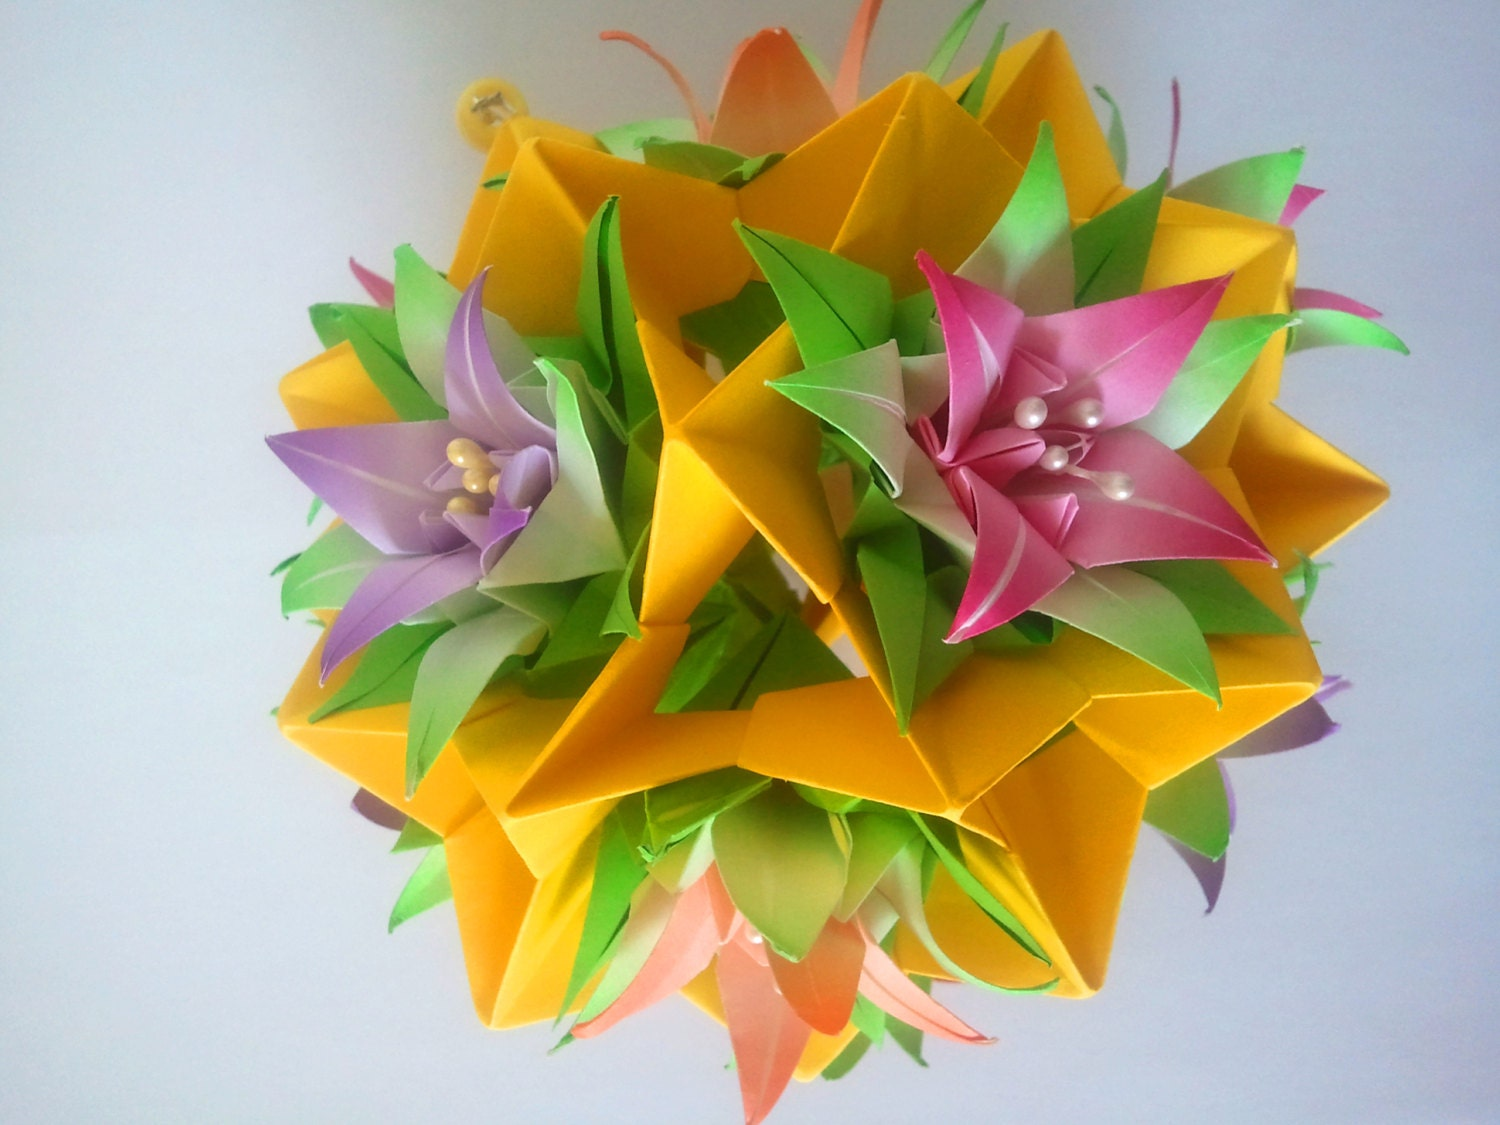 3d Origami kusudama FLOWERS - photo#47